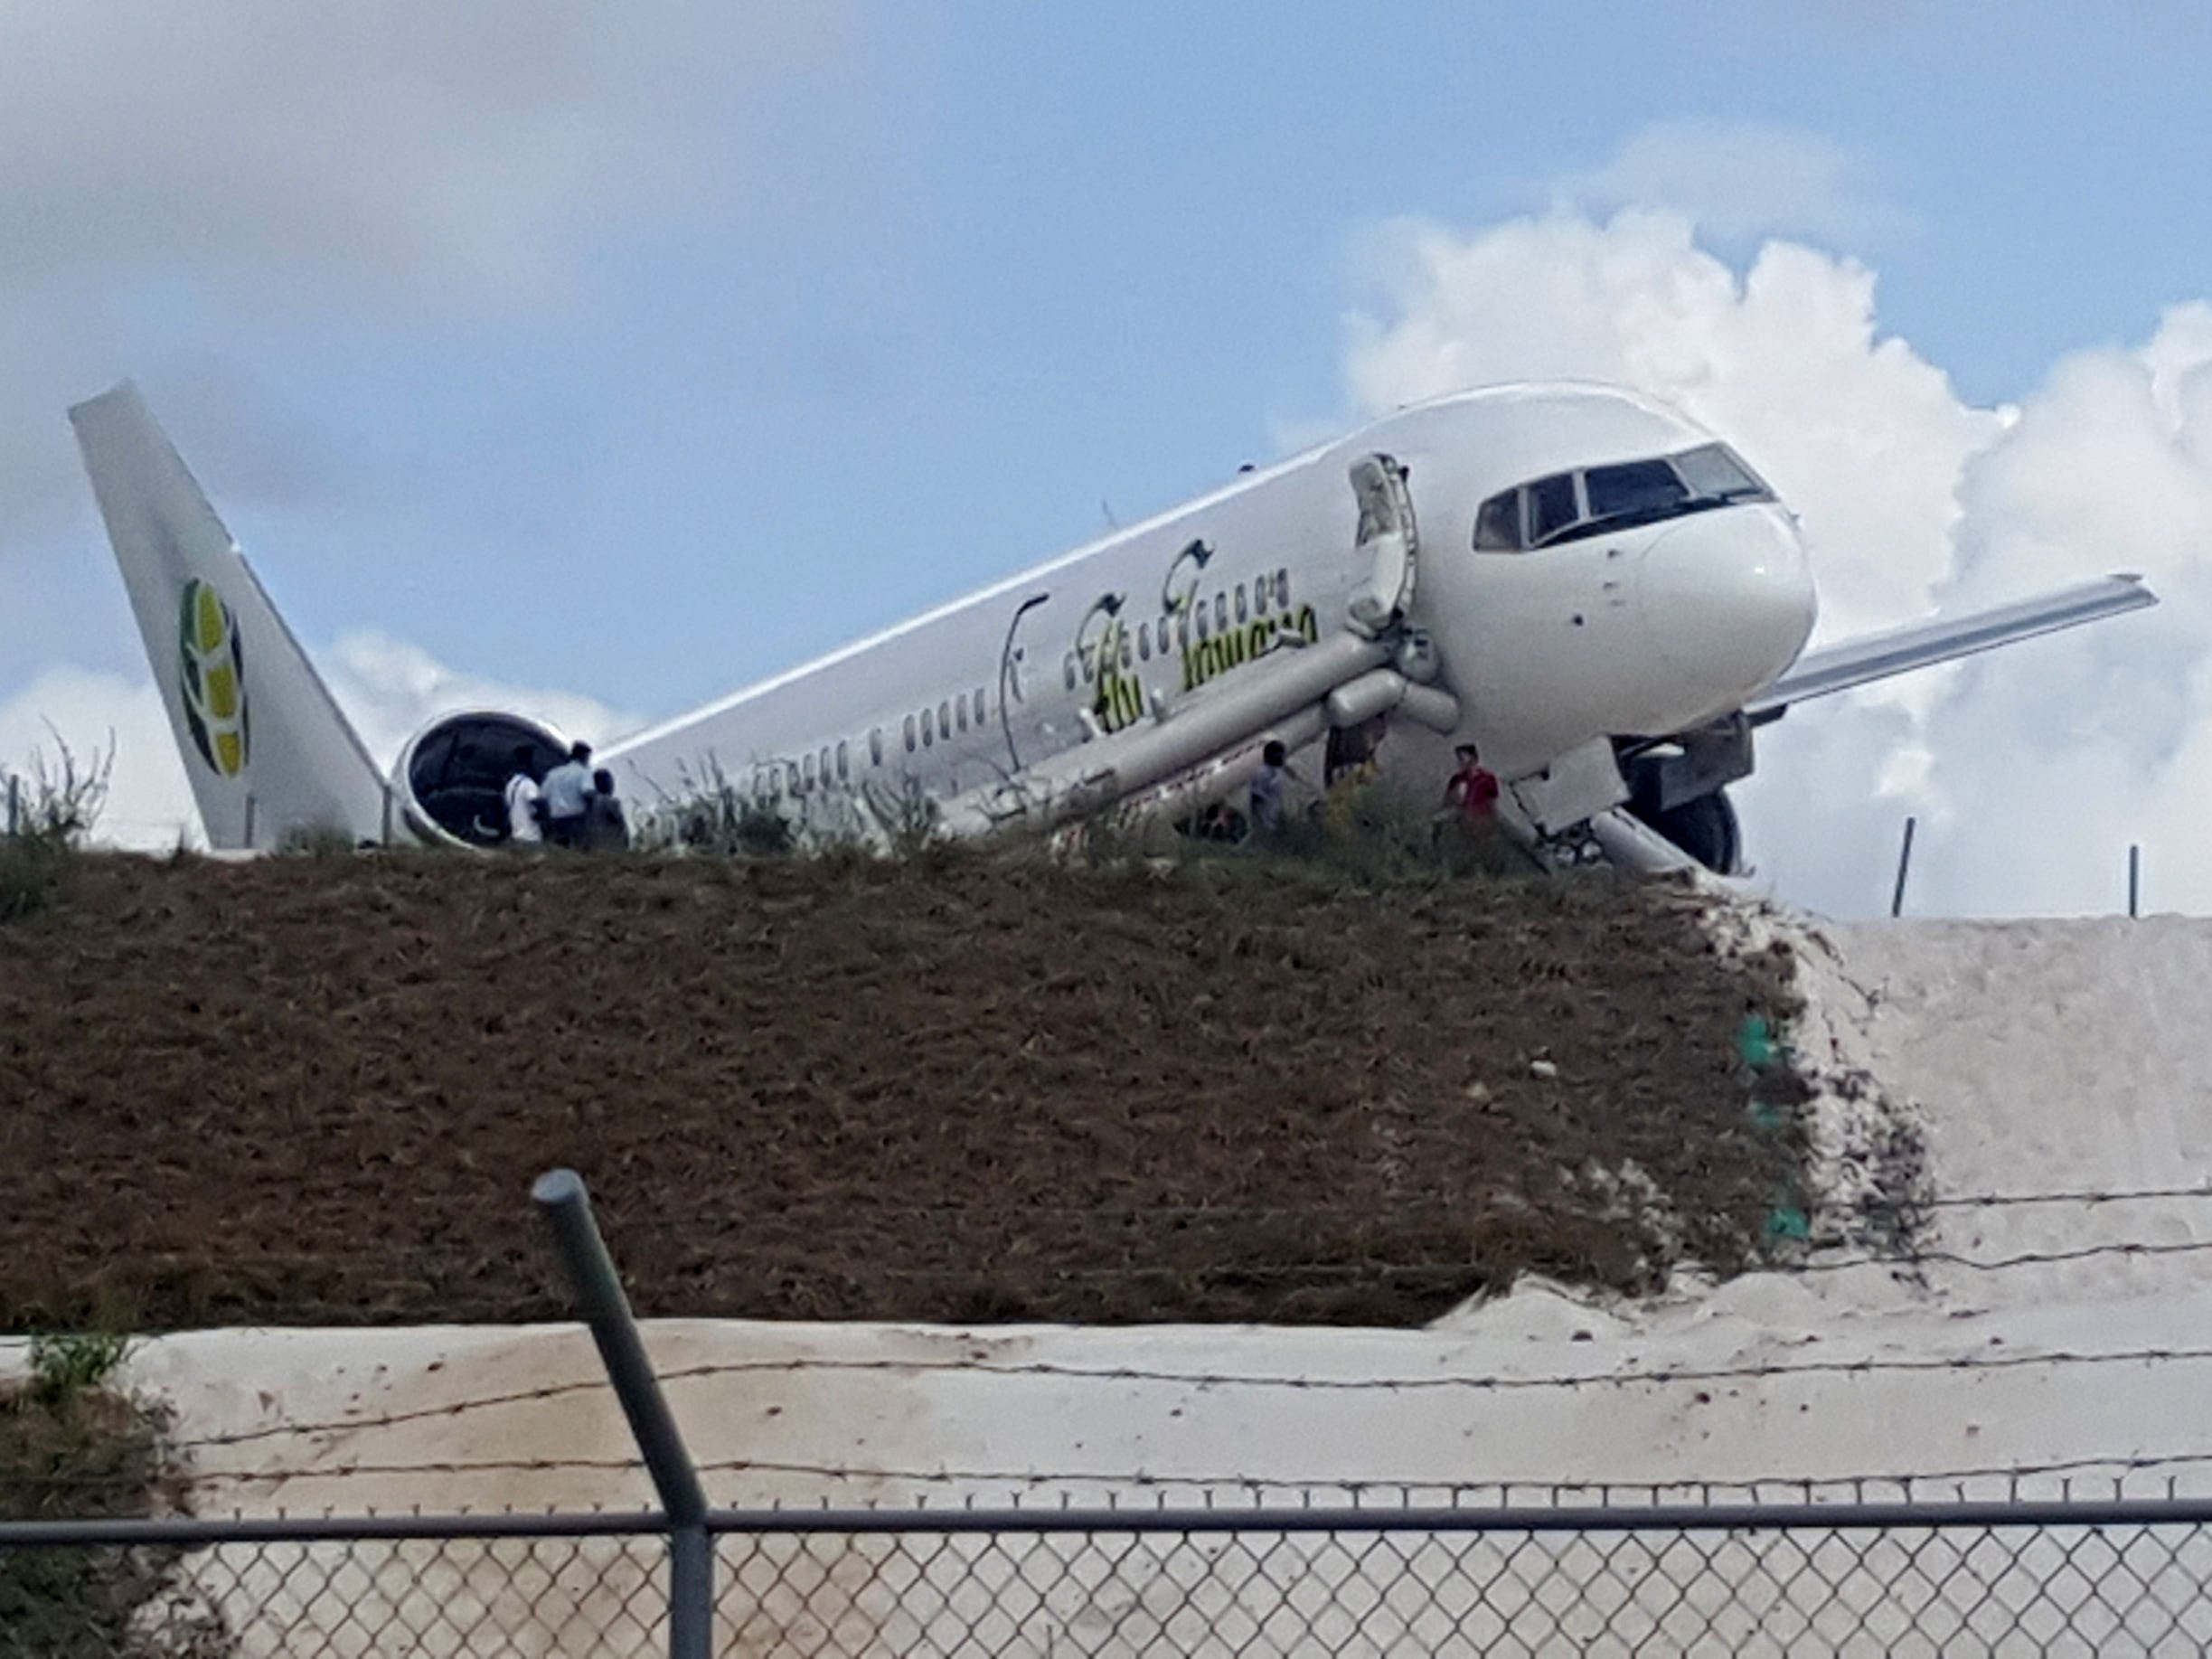 A Toronto-bound Fly Jamaica airplane is seen after crash-landing at the Cheddi Jagan International Airport in Georgetown, Guyana on November 9, 2018. - A Boeing jetliner carrying 126 people crash-landed at the airport in Guyana's capital Georgetown on Friday, injuring six people, the transport minister said.